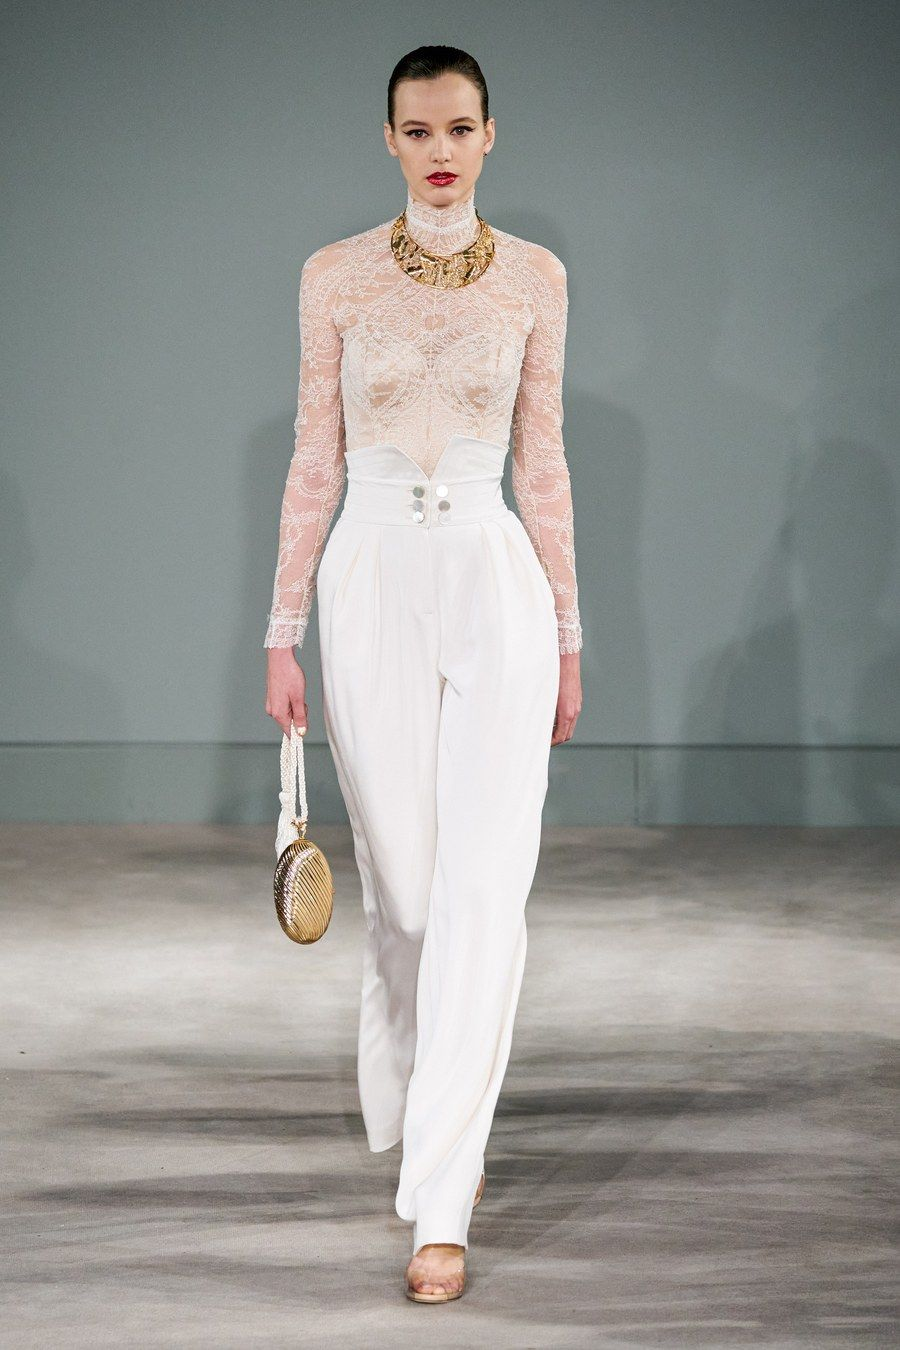 Alexis Mabille Spring 20 Couture Fashion Show   Couture fashion ...